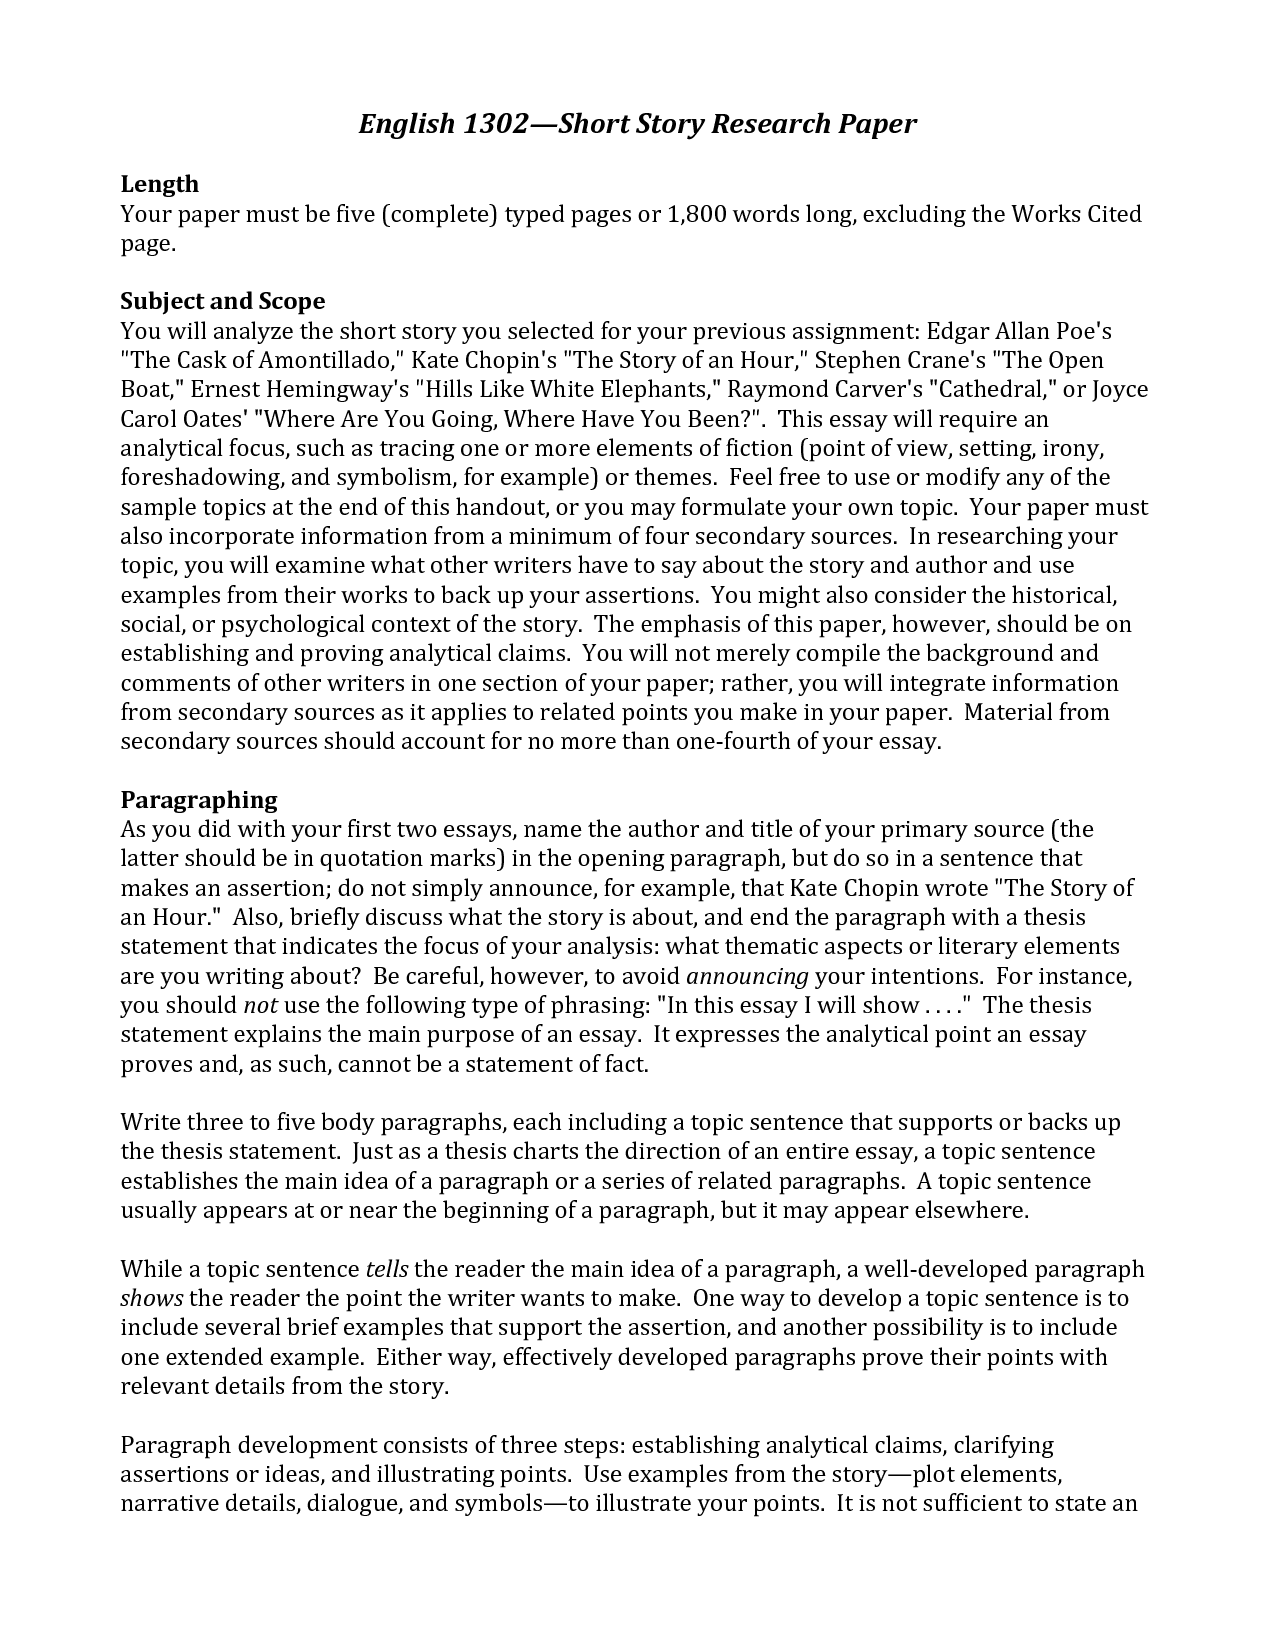 writing essays and research reports Now you want to write the research paper for it example of a research paper--- start of example ---[page 1 - text aligned in the center and middle of the page.